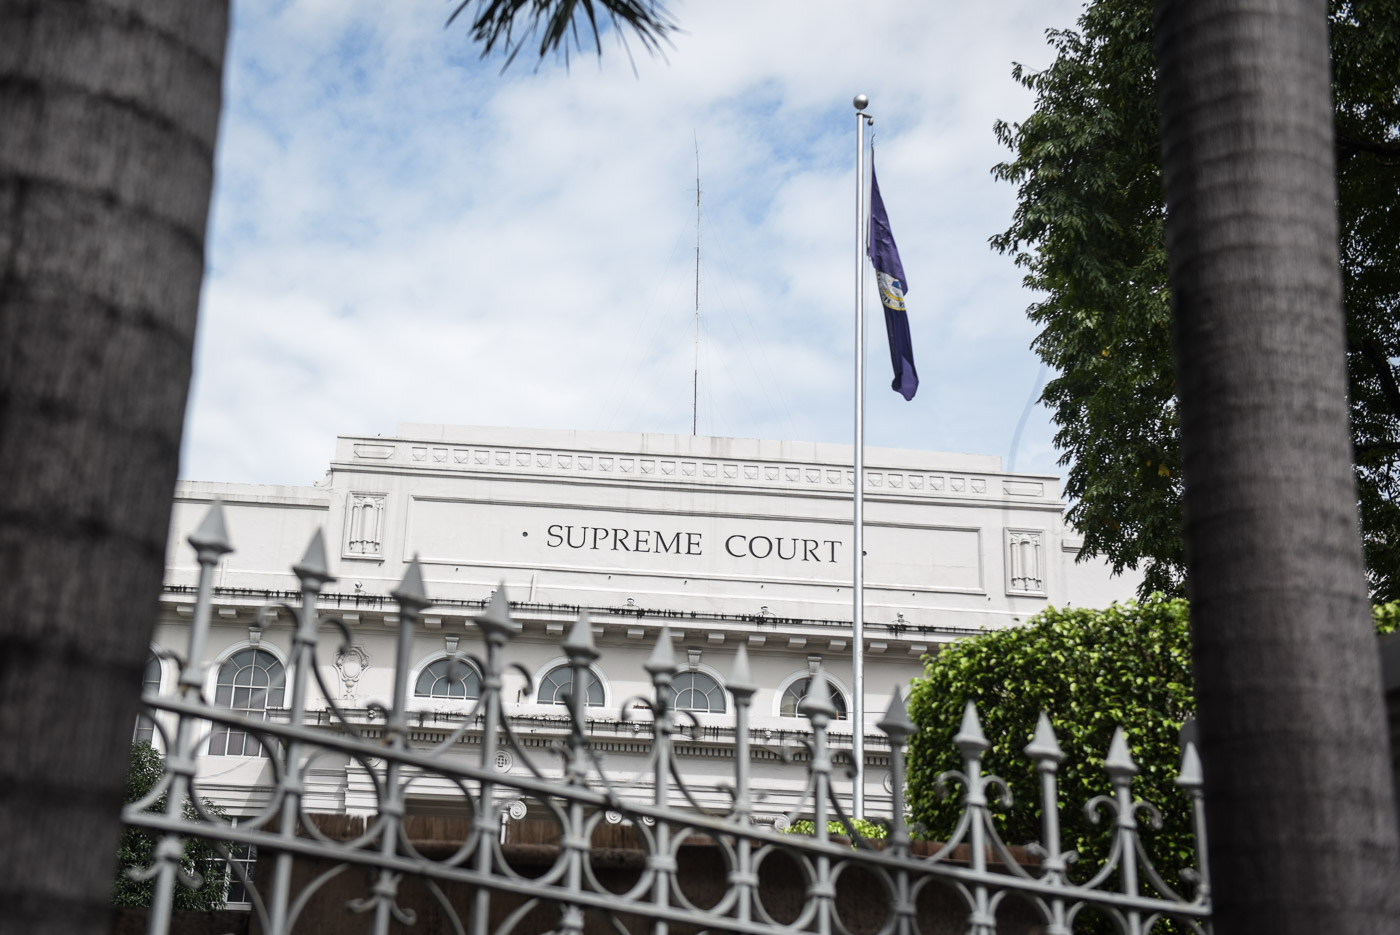 SC orders permanent closure of Inawayan landfill in Cebu City